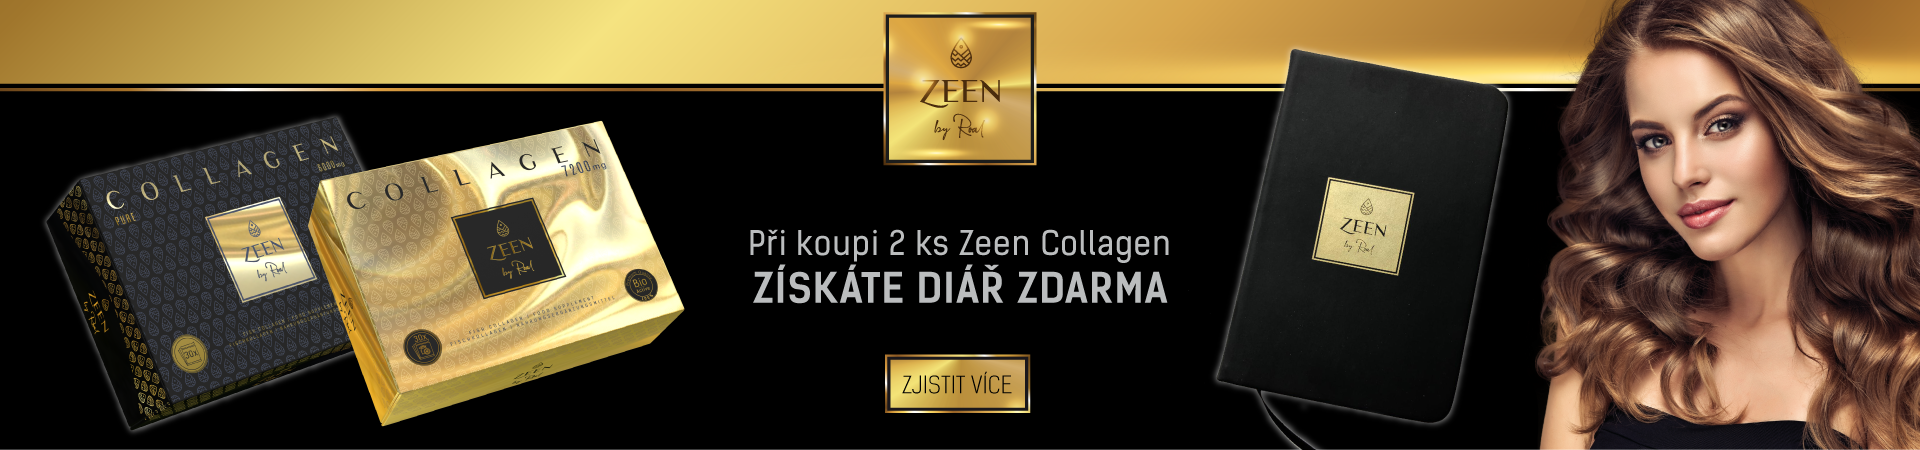 Zen collagen